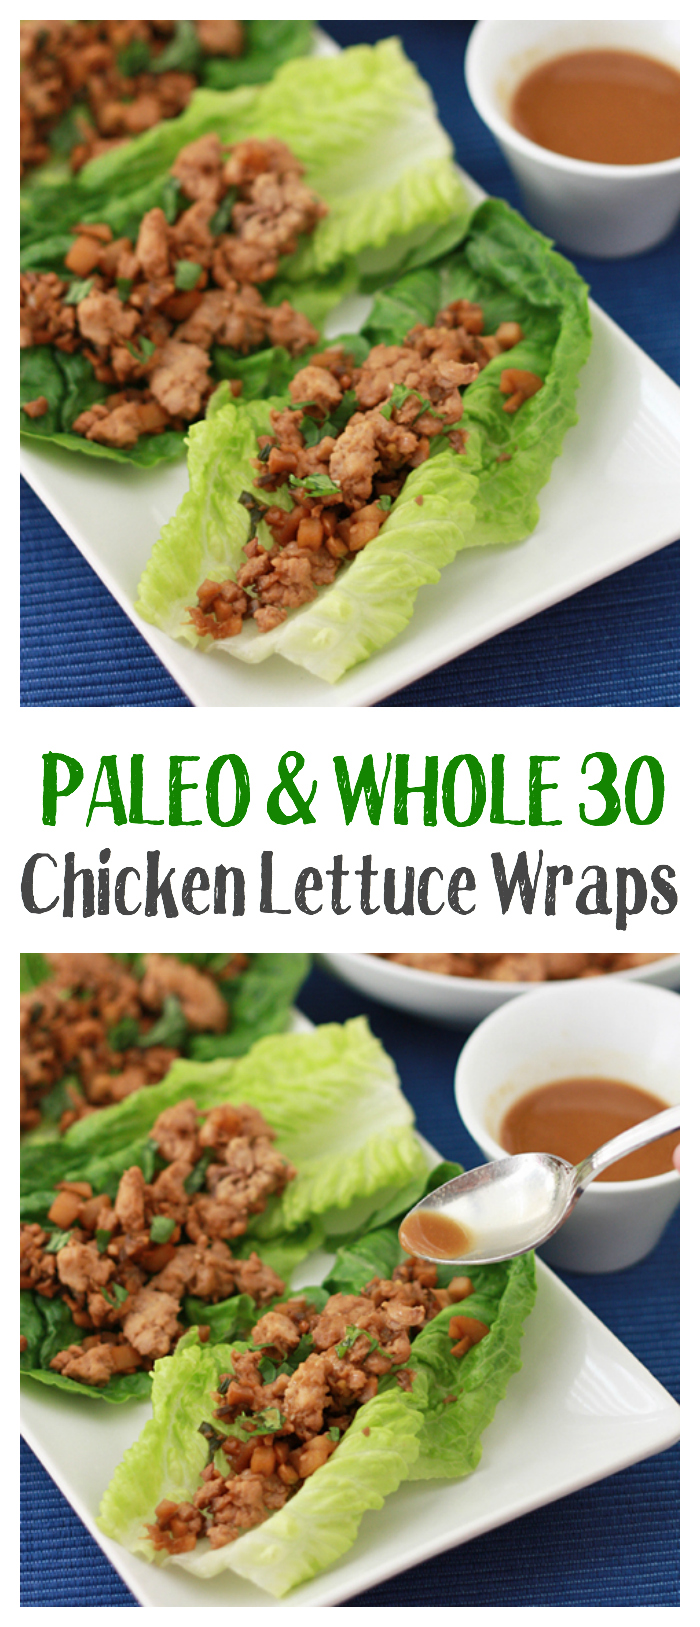 Chicken Lettuce Wraps (Paleo & Whole30 Approved!) • One Lovely Life